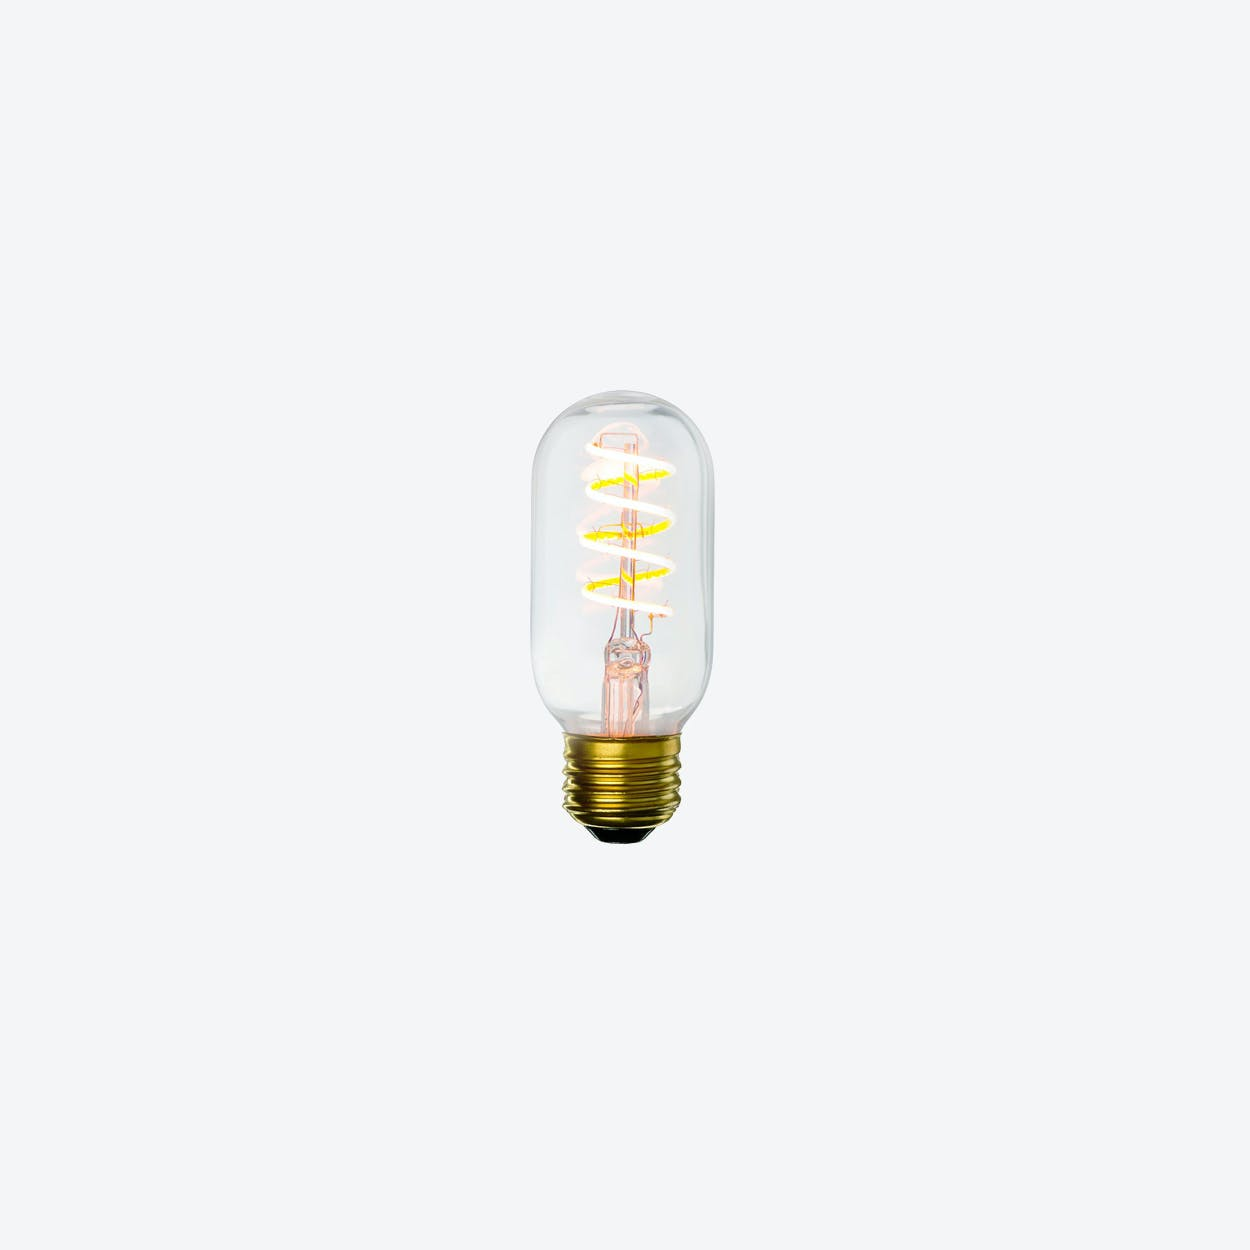 Sool LED Light Bulb